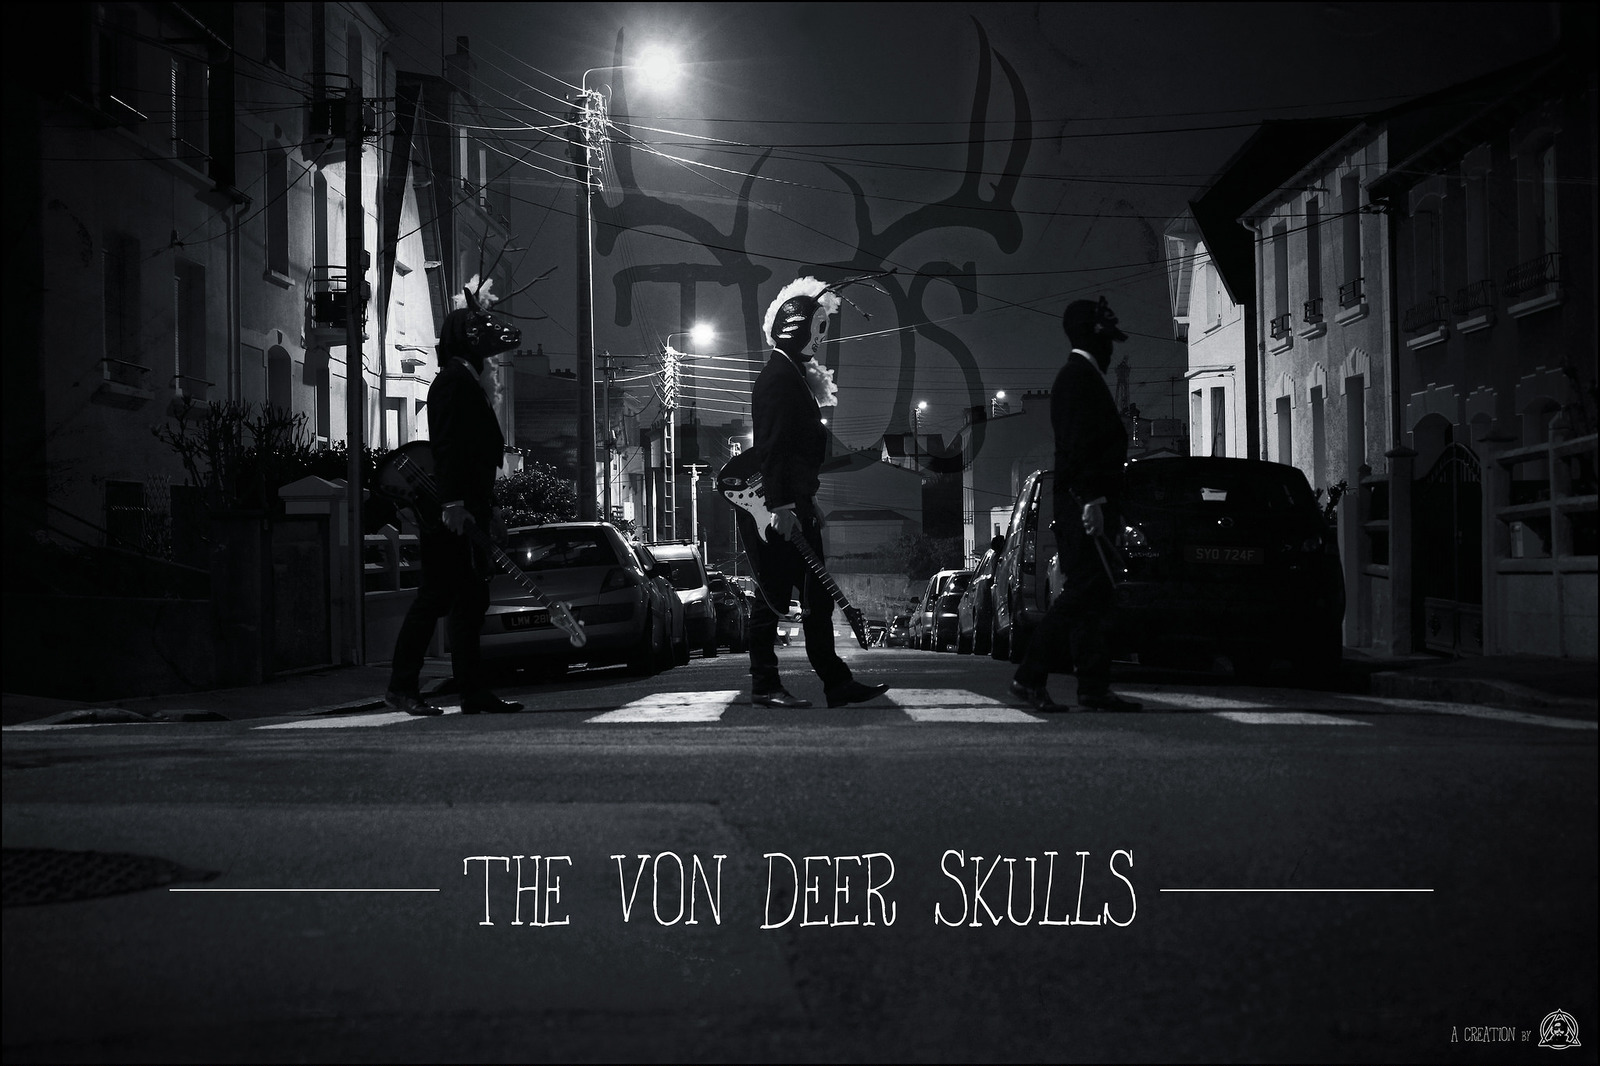 The Von Deer Skulls - Promo